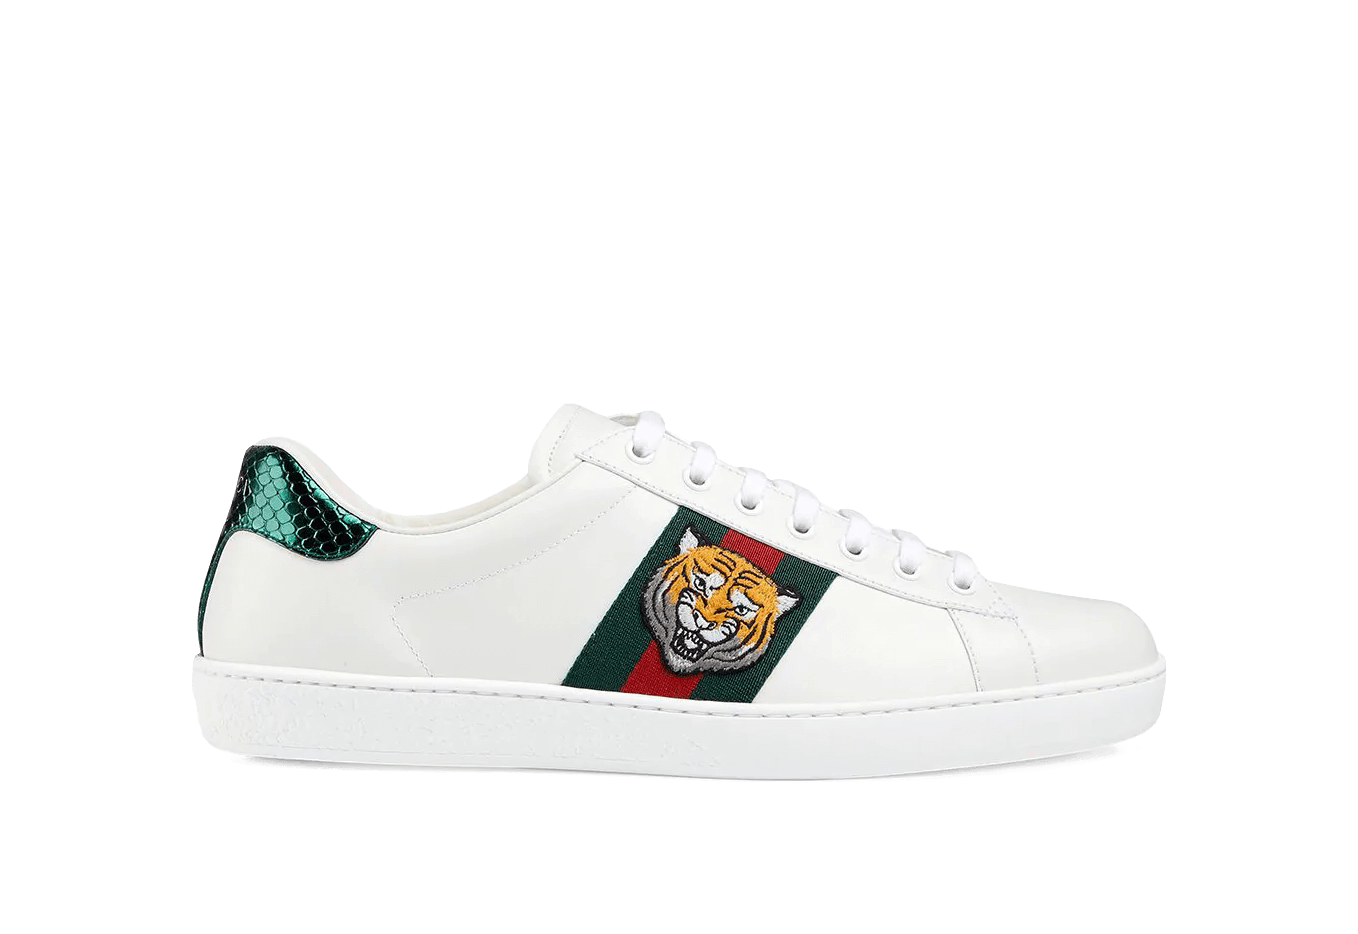 Buy New Gucci     Tiger Appliqued